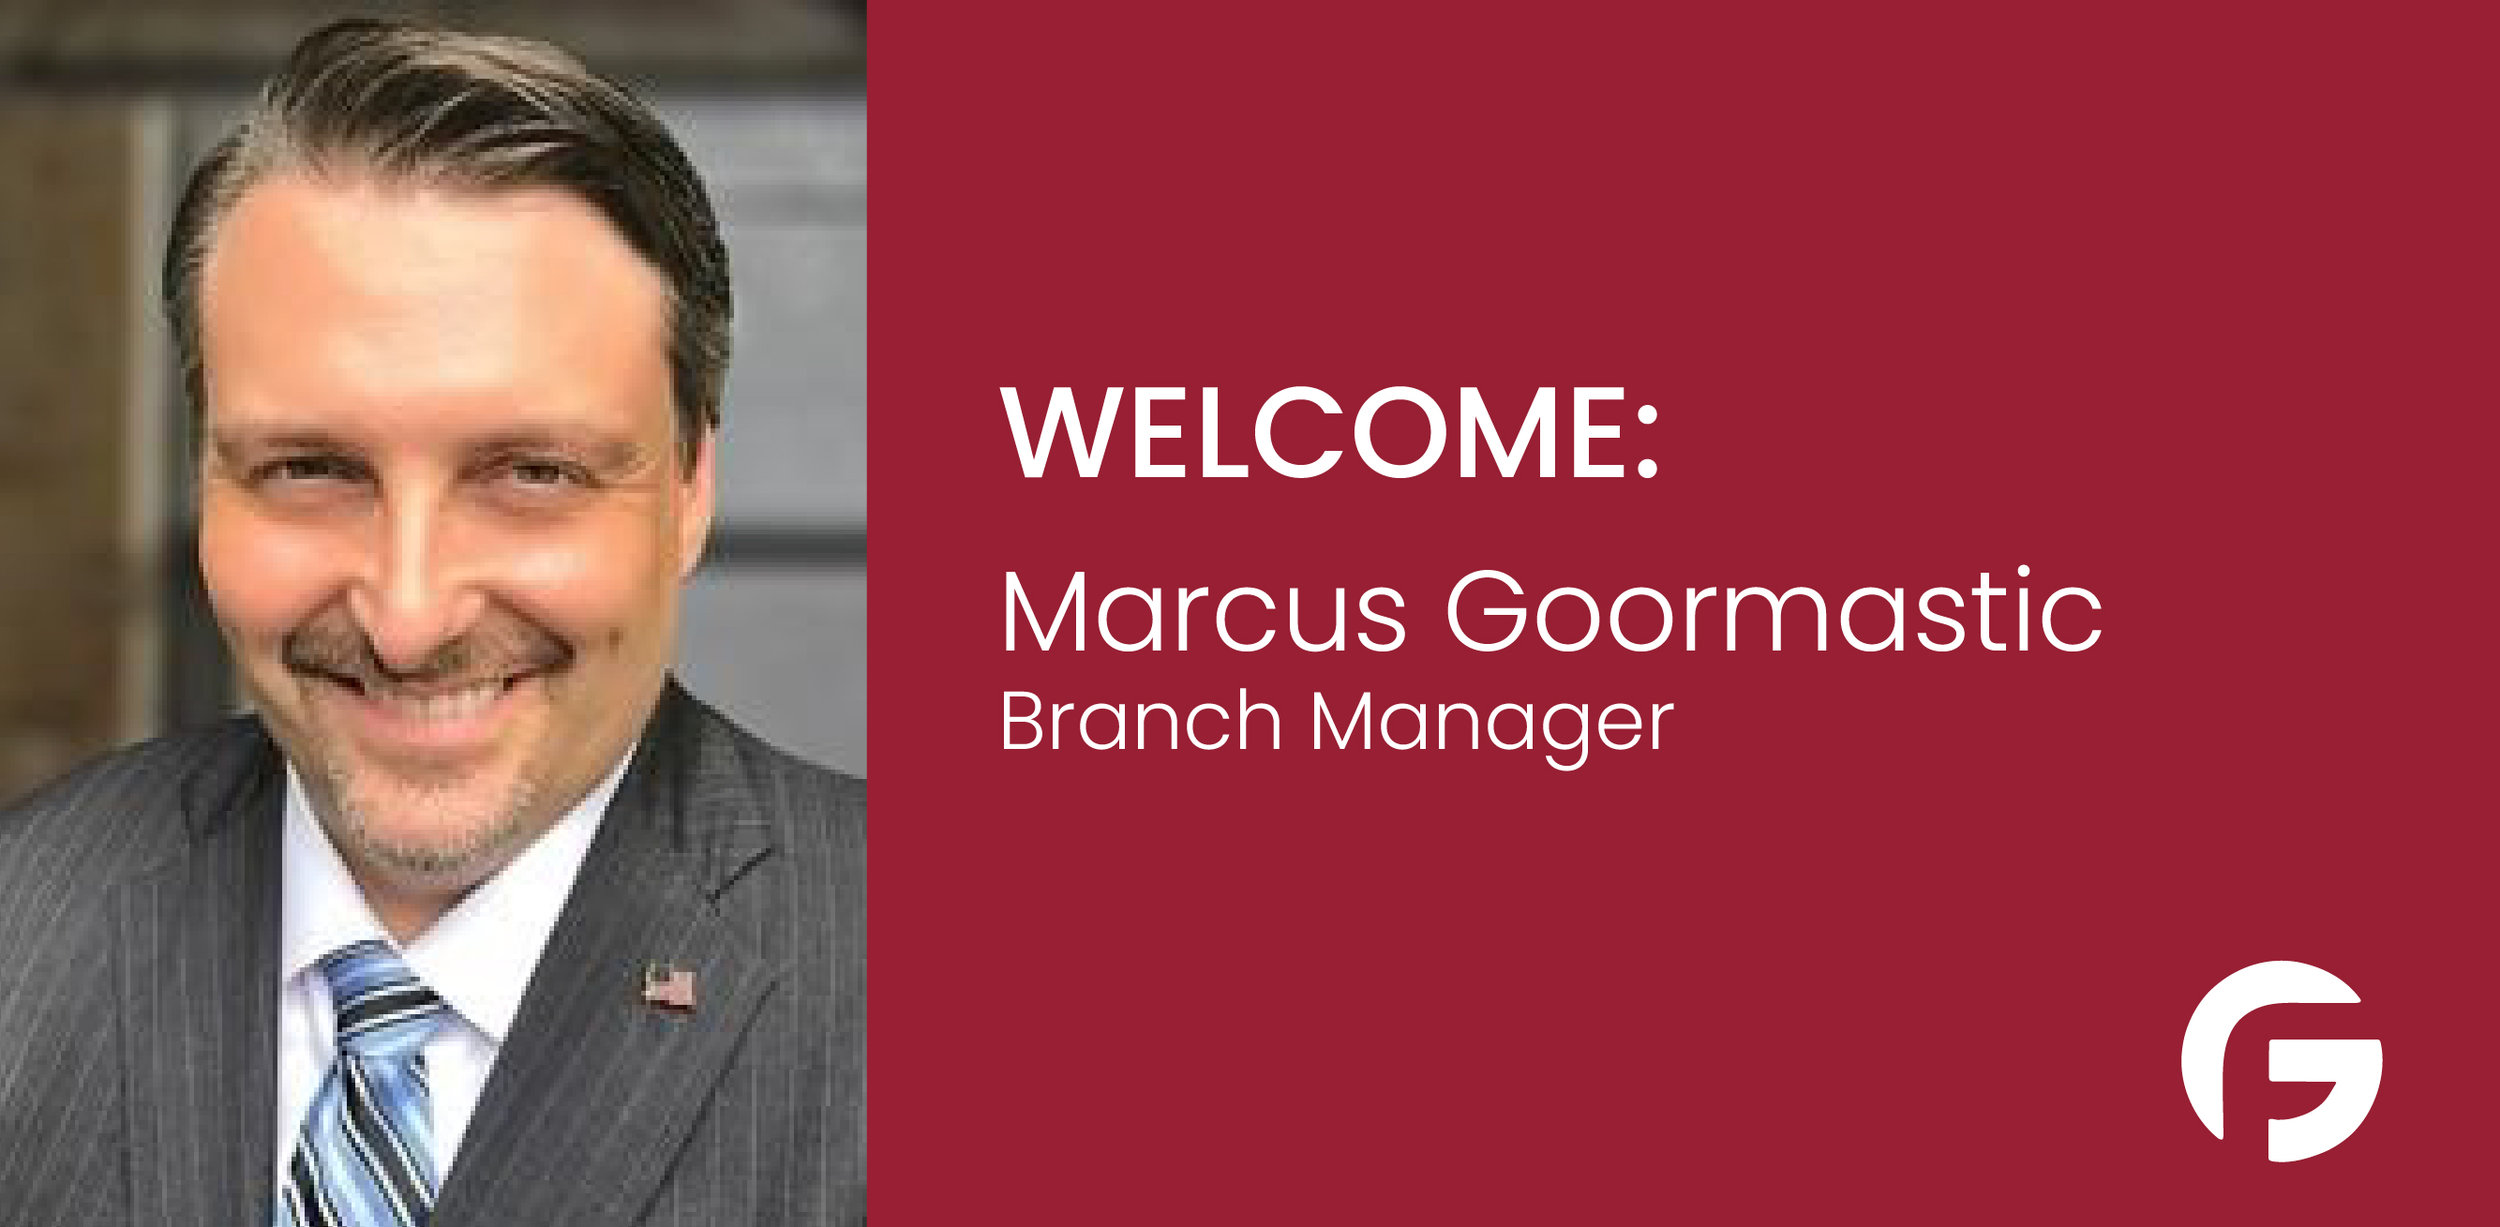 Marcus Goormastic Branch Manager and Loan Originator serving Connecticut